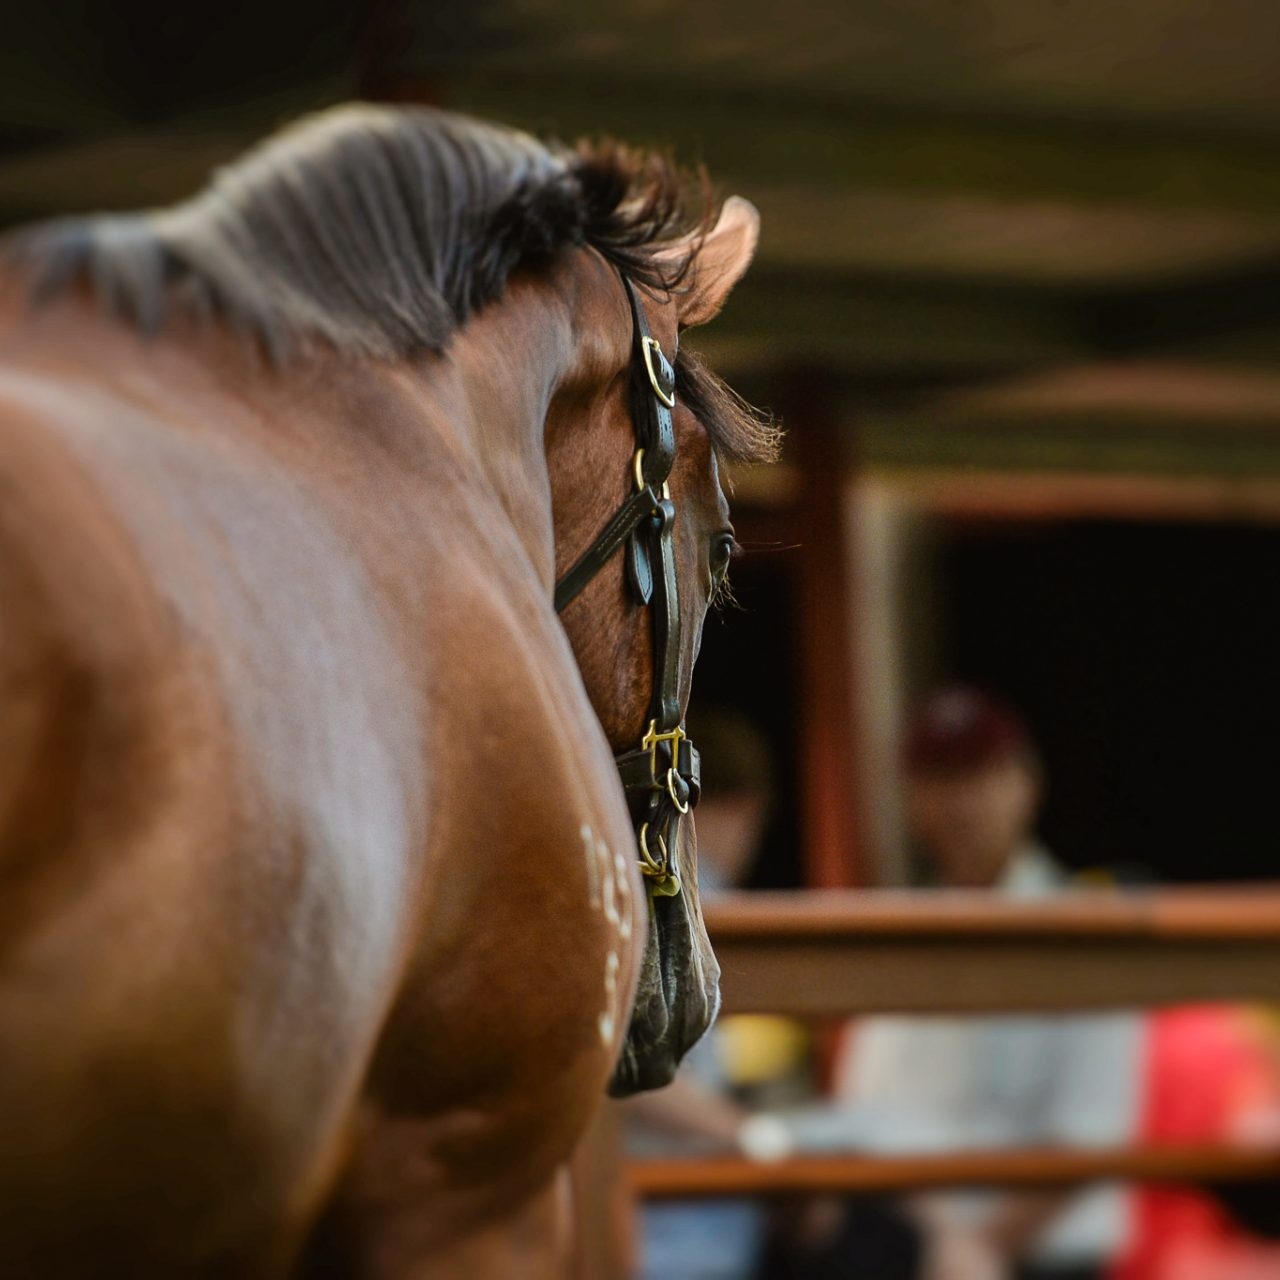 GOLD COAST, AUSTRALIA - 11/01/2017: {Day 1 of the Magic Millions Yearling Sale} - (photo by Sarah Ebbett Photography)